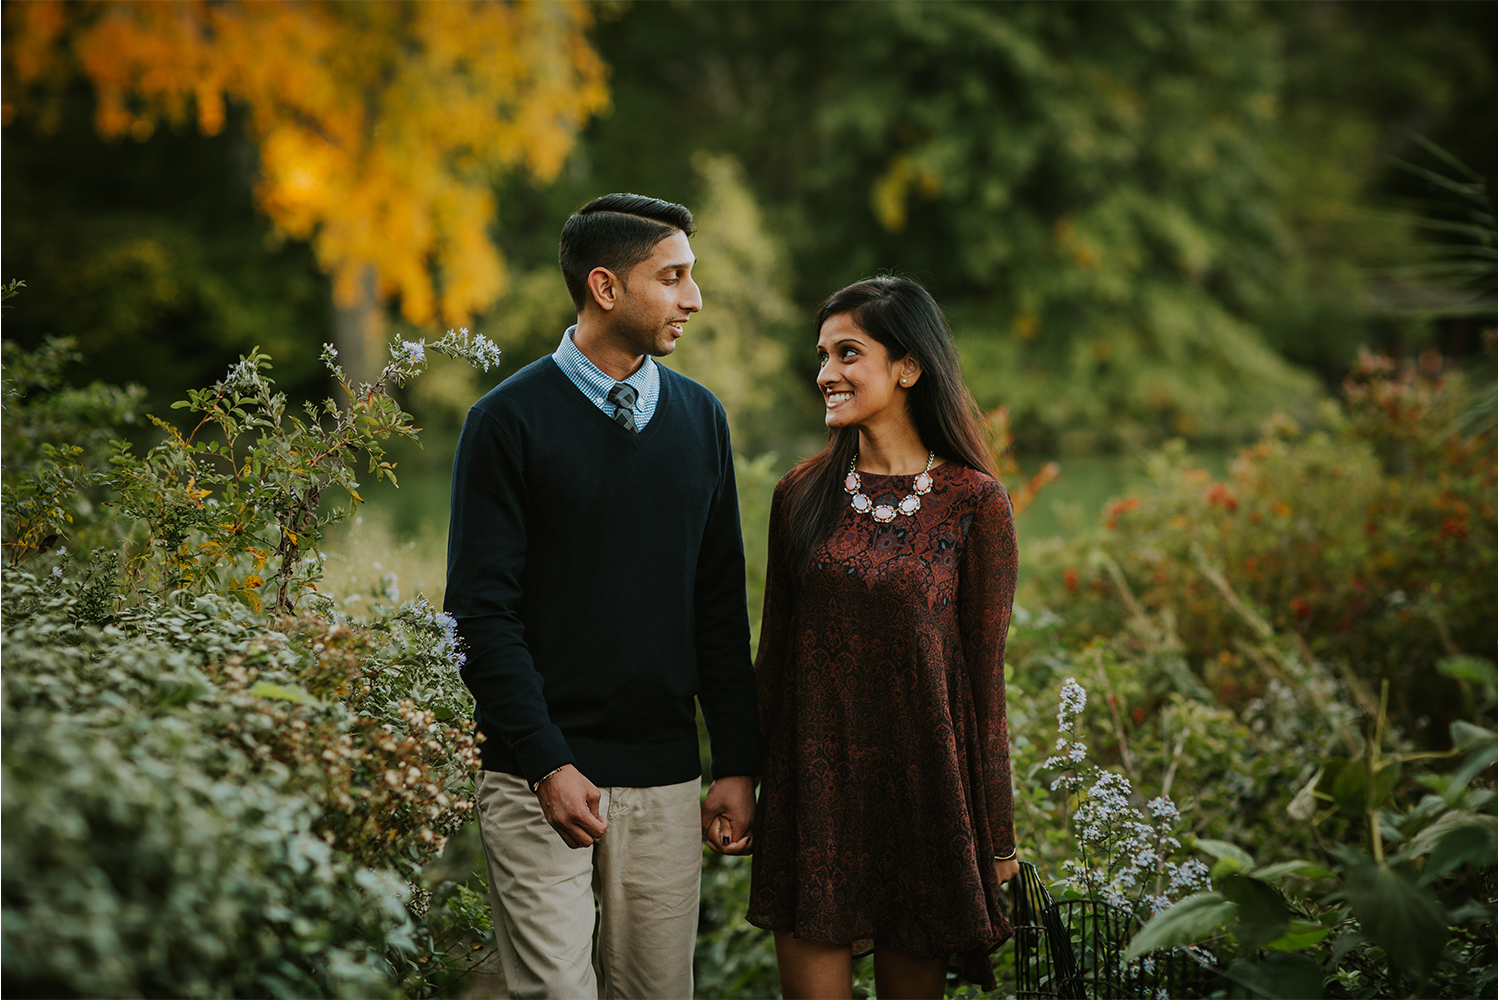 South_Asian_Wedding_Photography_Engagement_Session_011.jpg